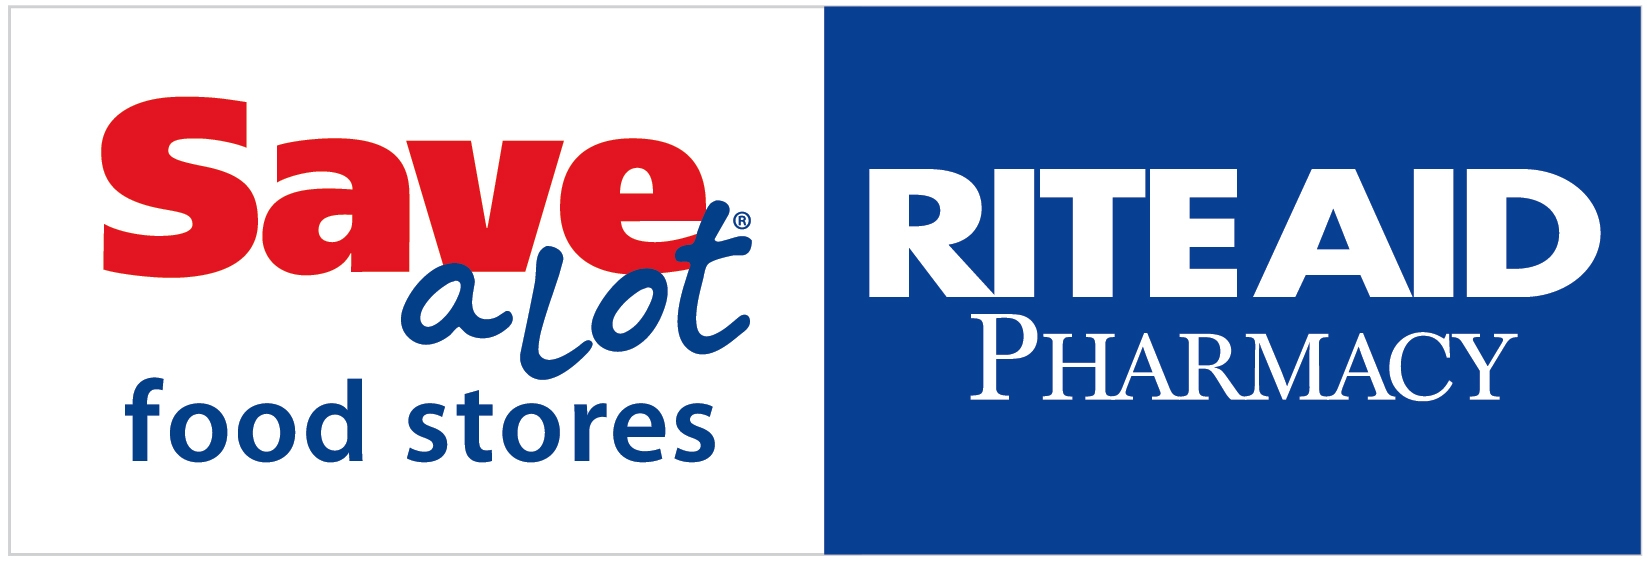 Find the best grocery store deals at Save-A-Lot. View the Save-A-Lot weekly ad for low prices on fresh meat, fruit, vegetables and every day groceries.